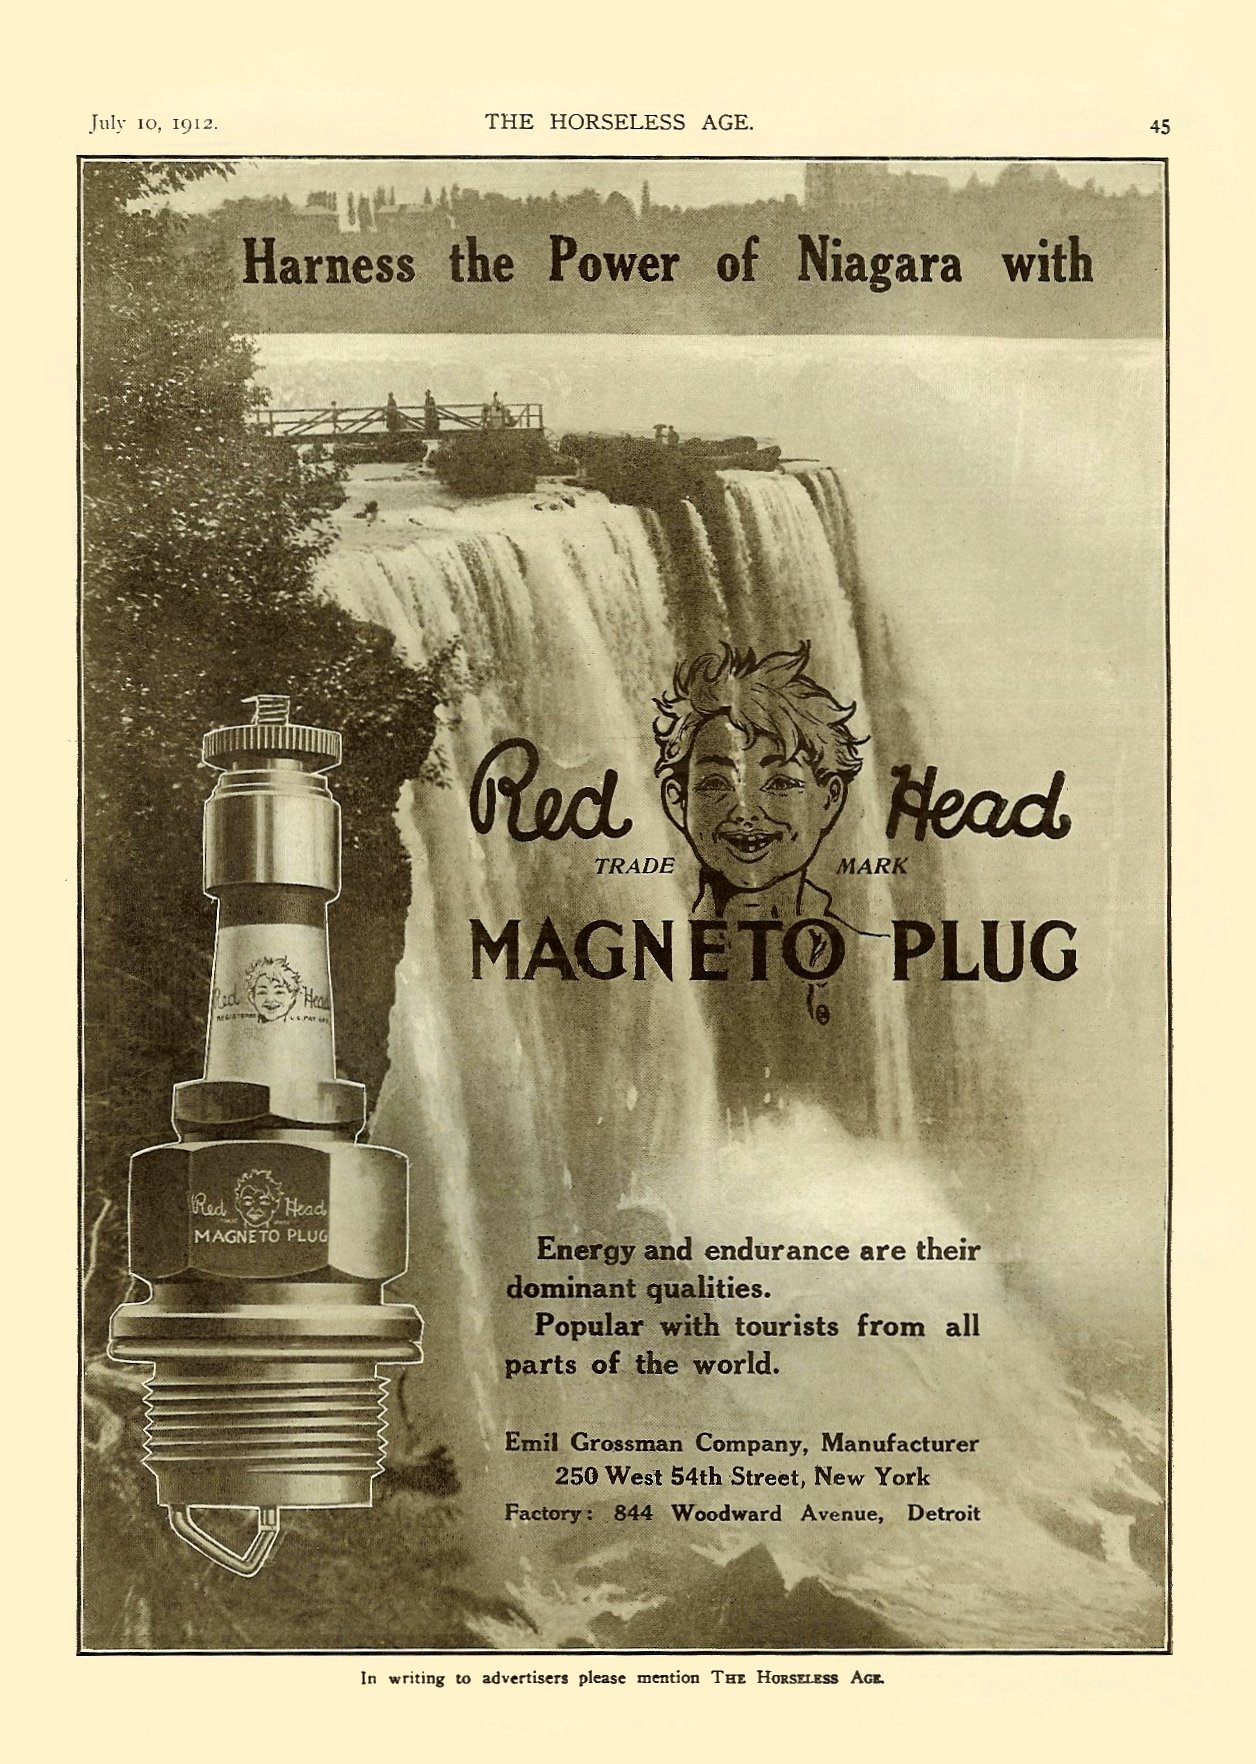 1912 7 10 RED HEAD Spark Plugs Harness the Power of Niagara with Emil Grossman M'F'G Co Inc Brooklyn (New York City) New York THE HORSELESS AGE Vol. 30, No. 2 July 10, 1912 9″x12″ page 45